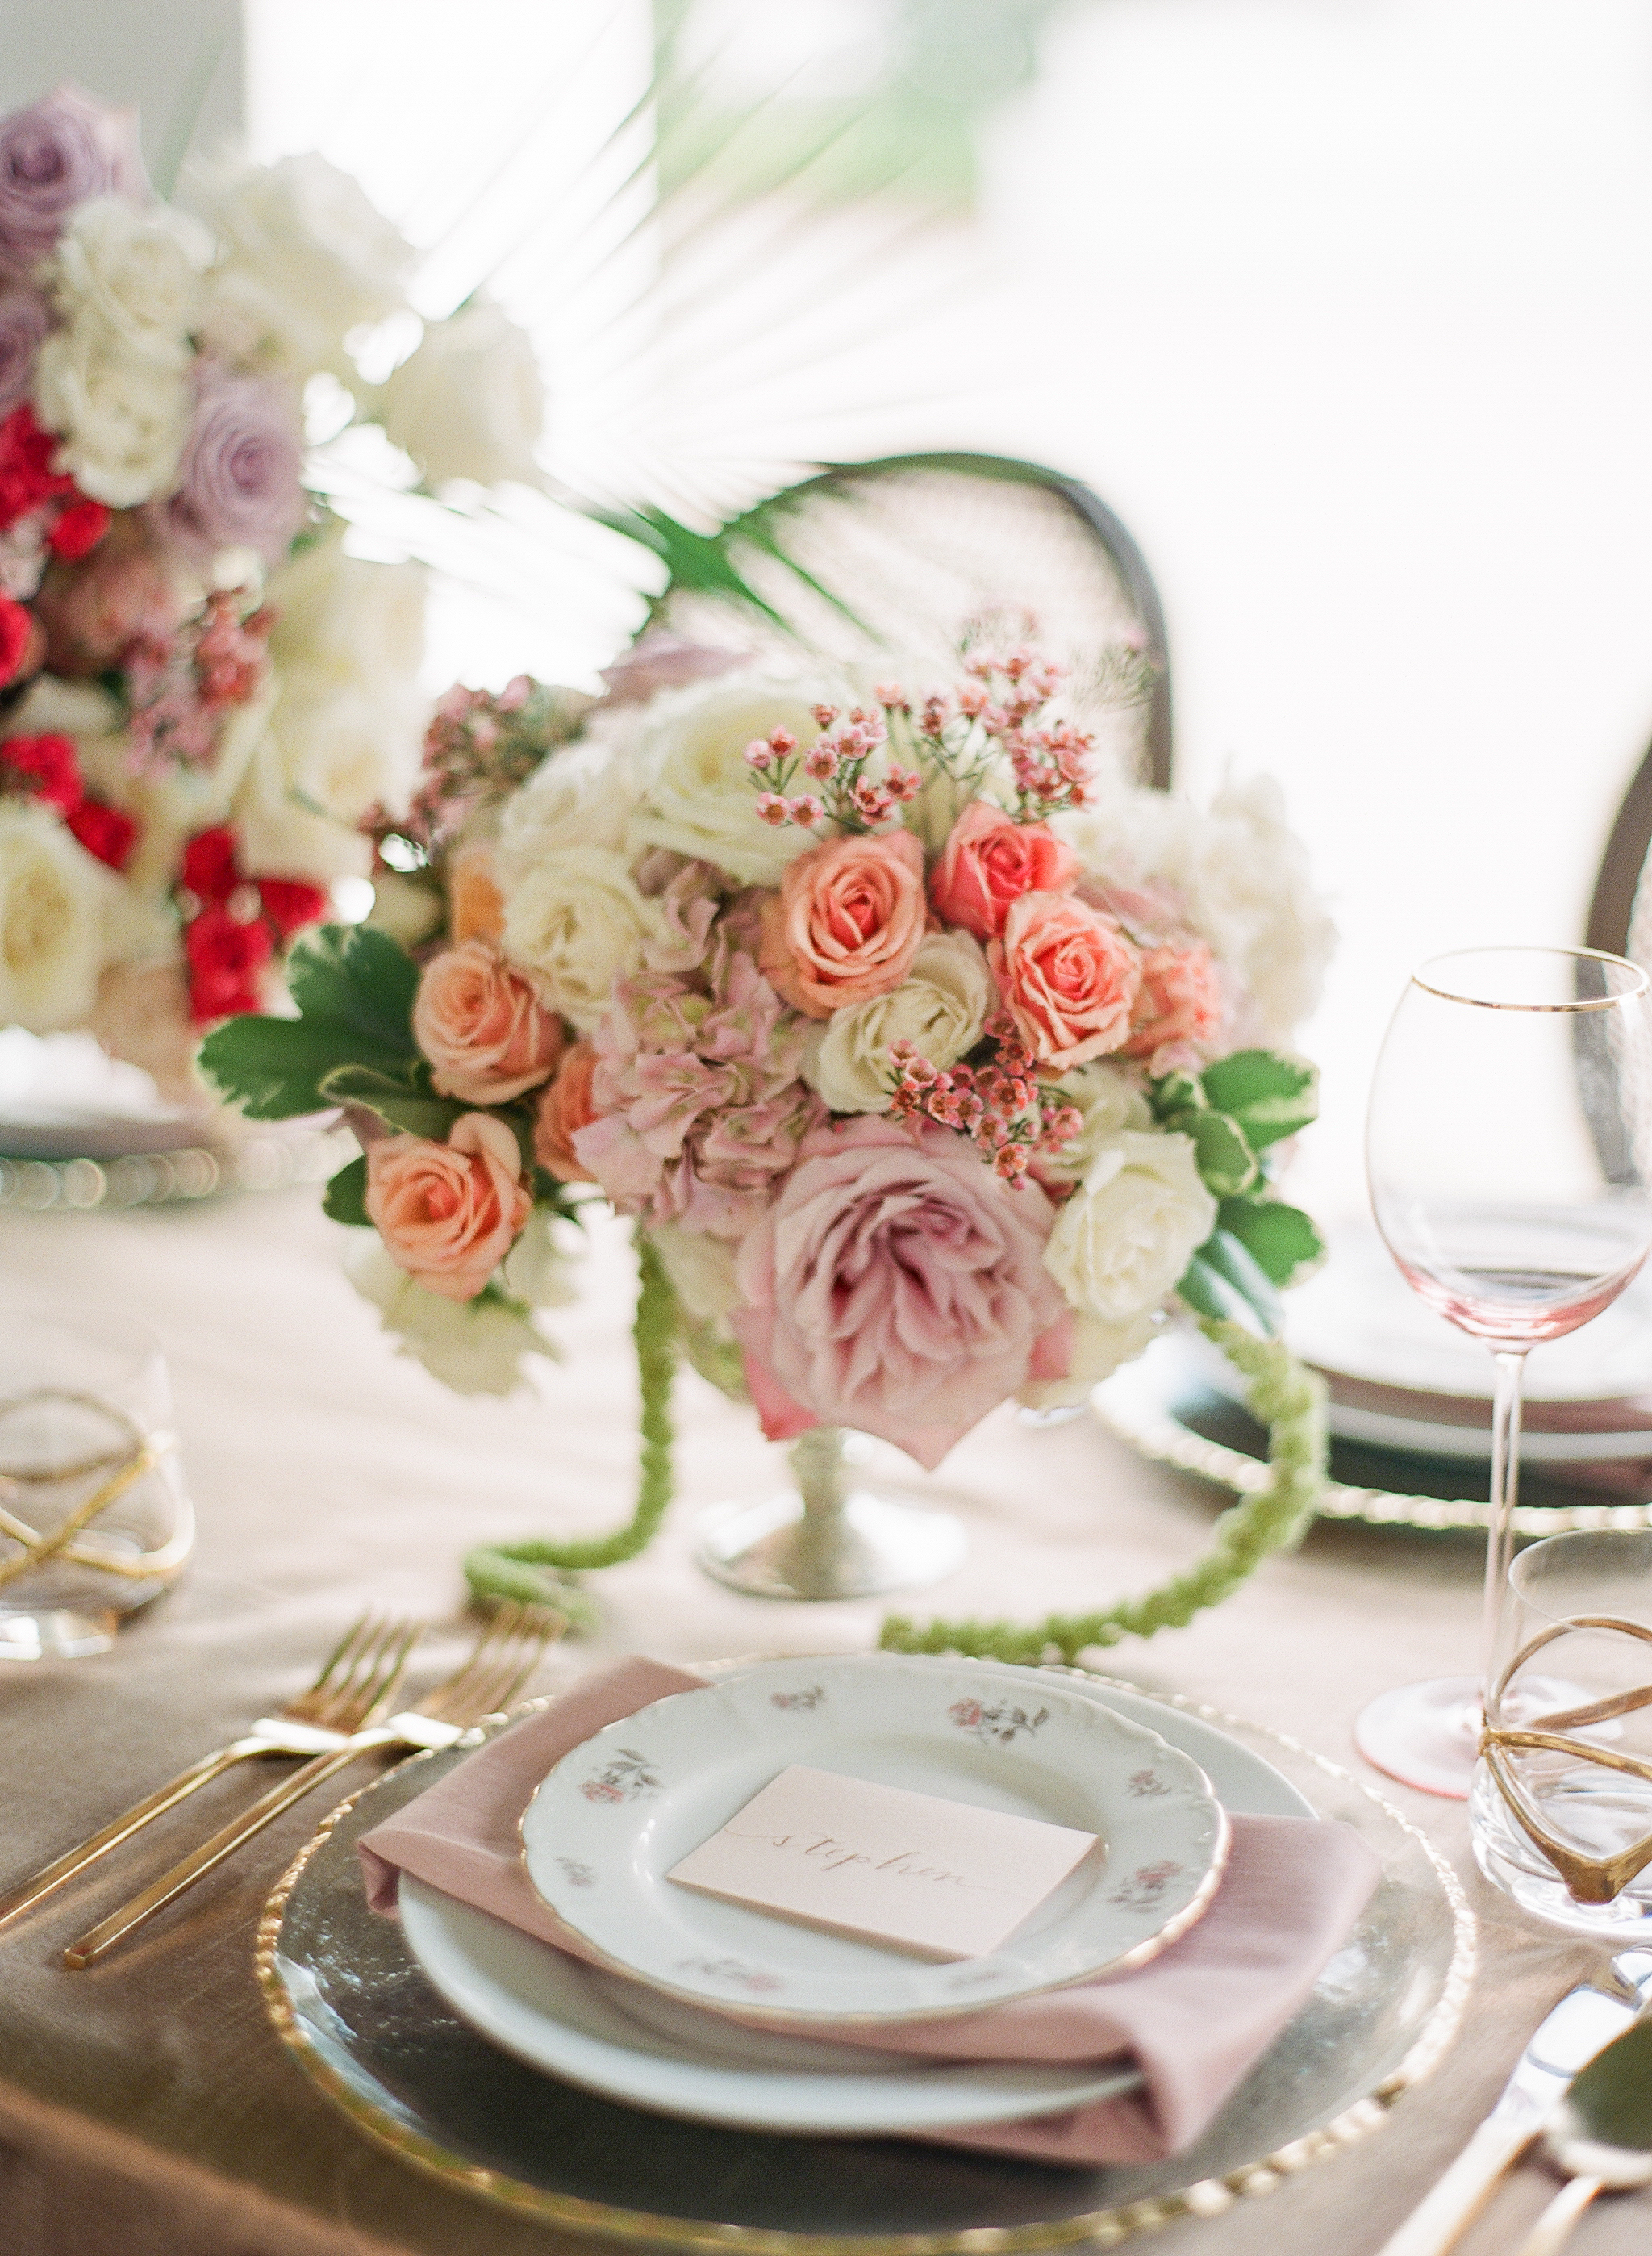 sapphireevents.com | Sapphire Events New Orleans | Luxury Wedding Planning and Design | Catherine Guidry Photography | Il Mercato Weddings and Events